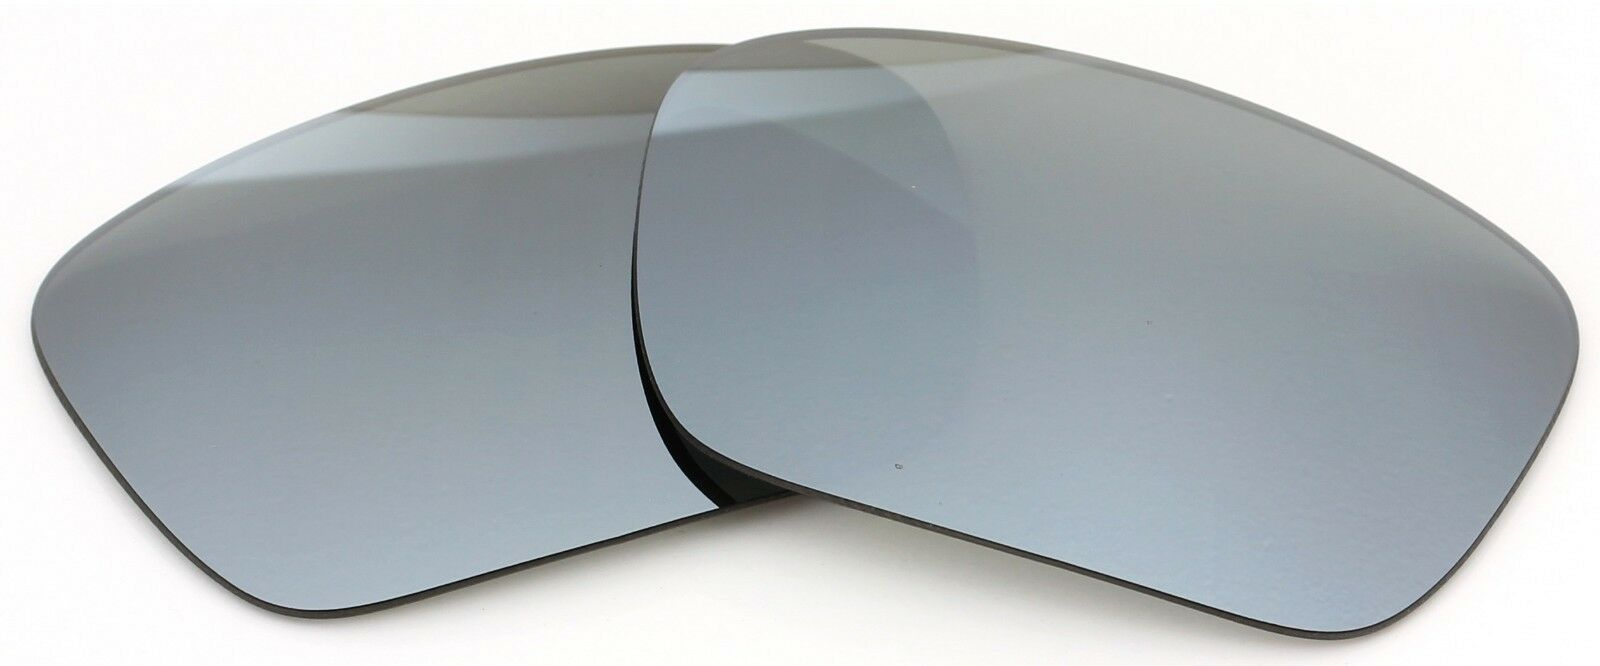 Polarized Ikon Iridium Replacement Lenses For Oakley Fuel